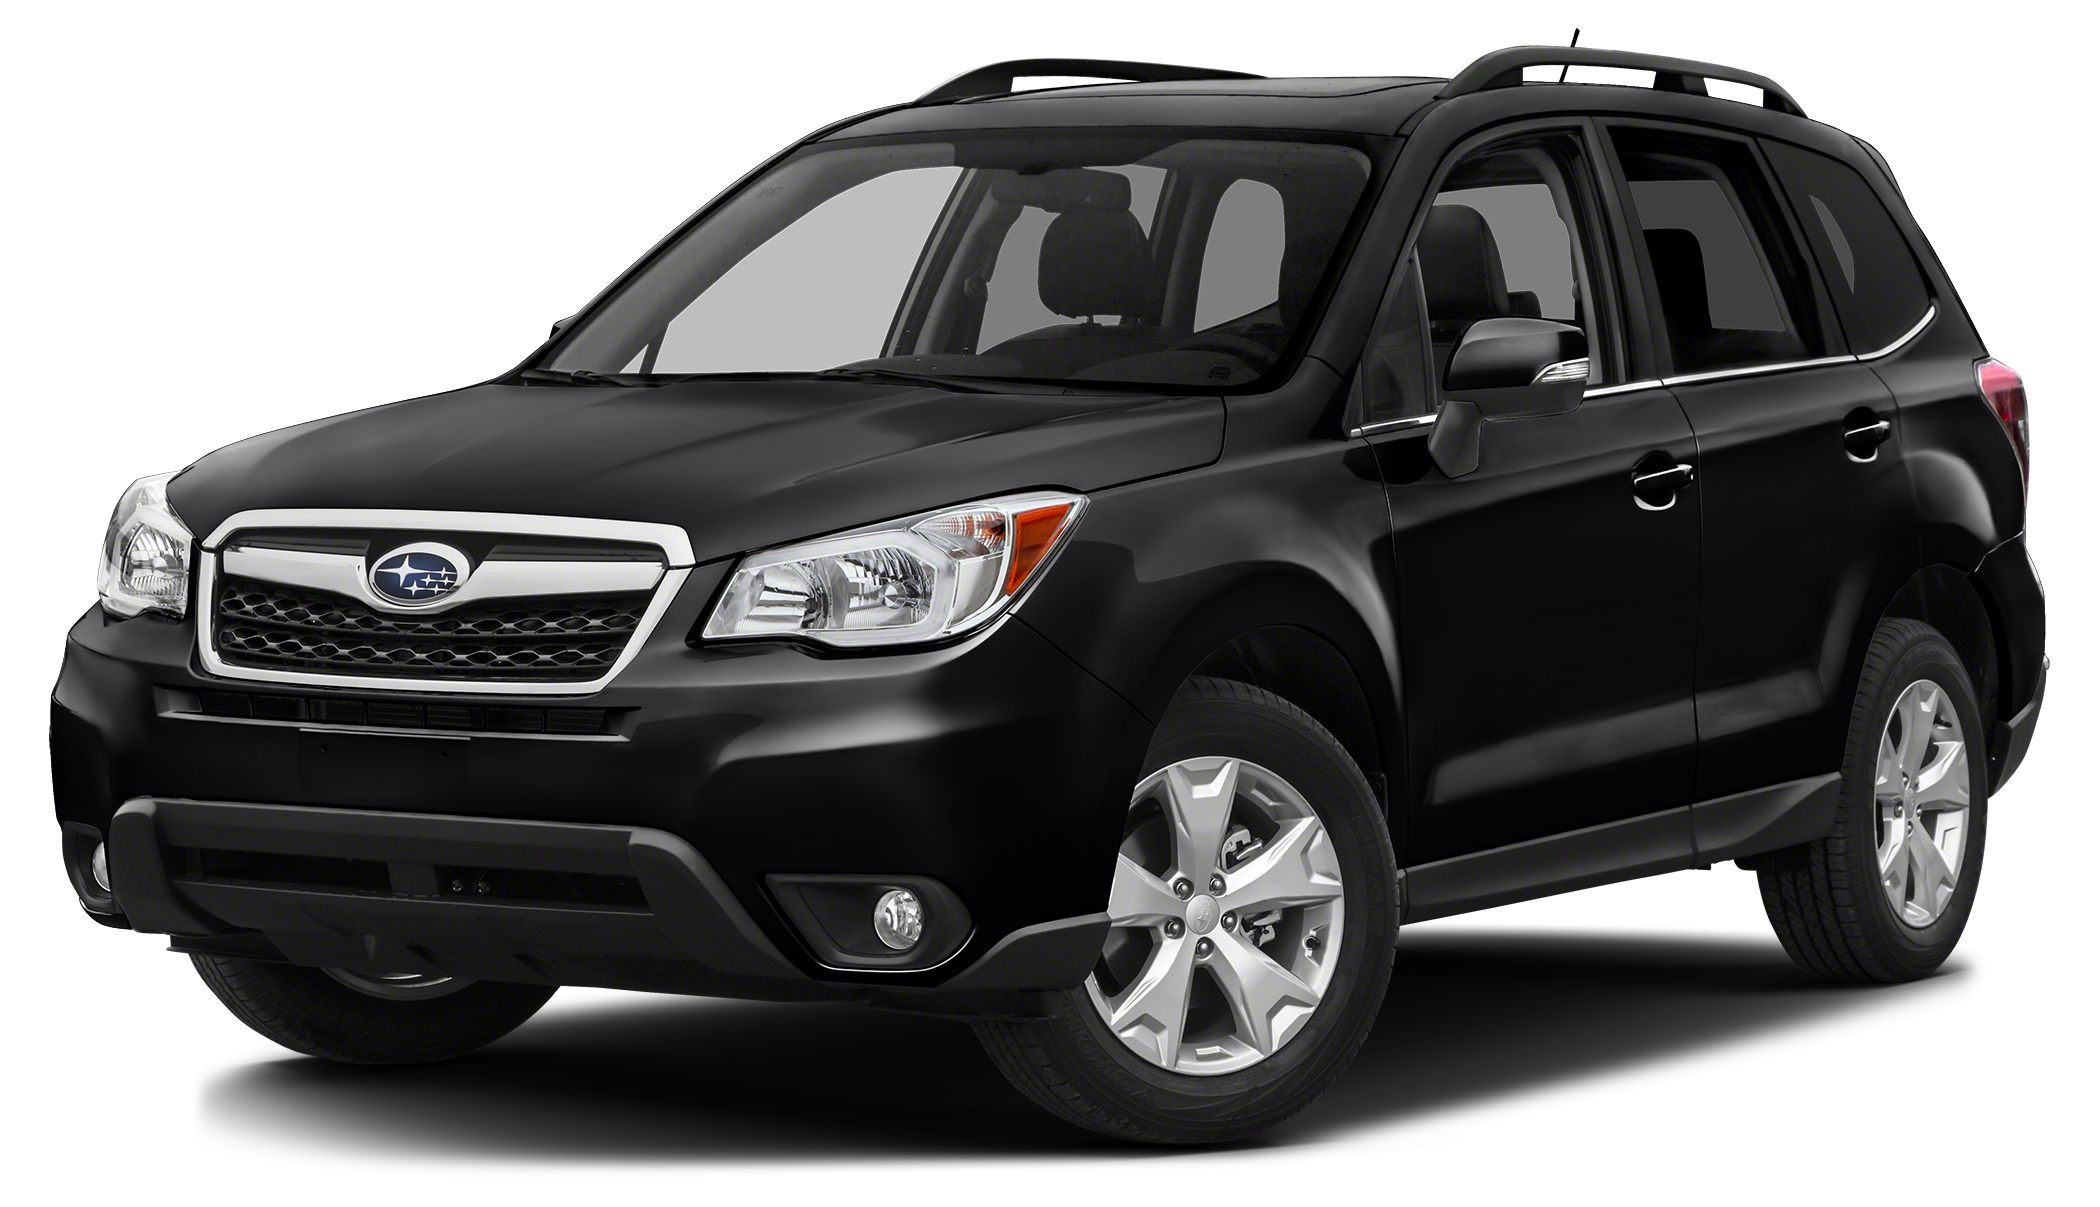 2014 Subaru Forester 25i Limited Miles 27510Color Crystal Black Silica Stock 401614A VIN JF